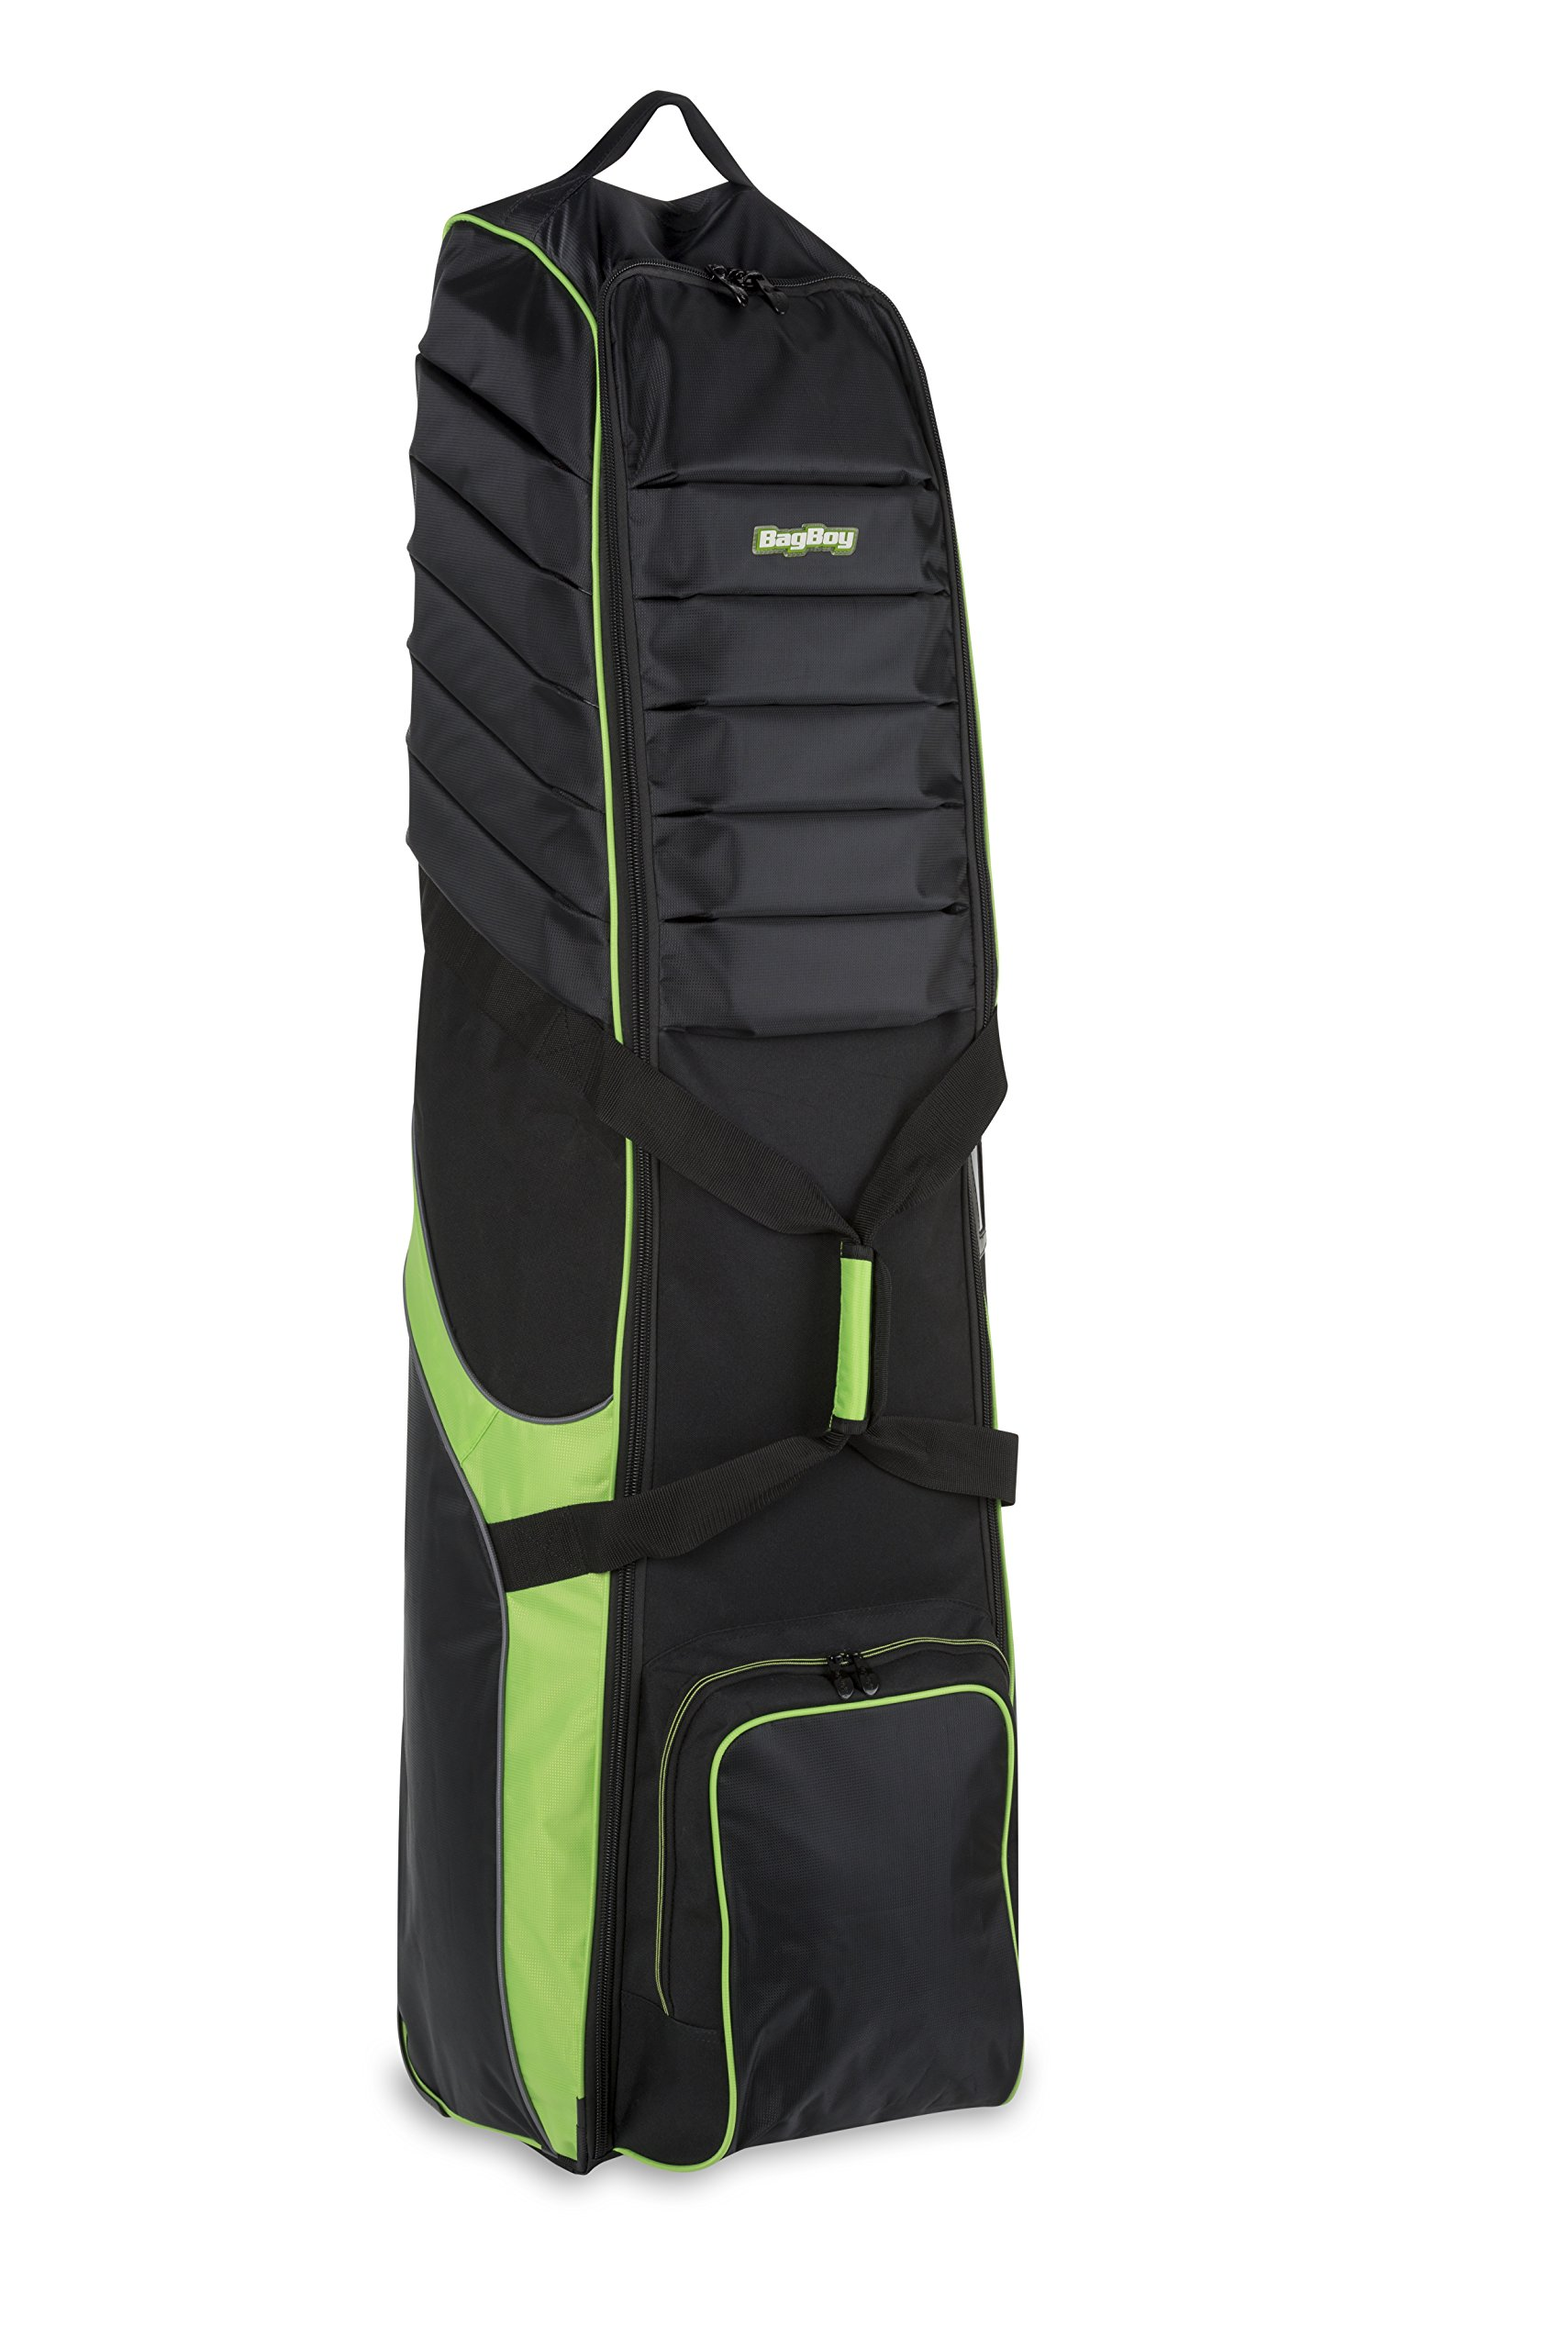 Bag Boy T-750 Wheeled Travel Cover Black/Lime by Bag Boy